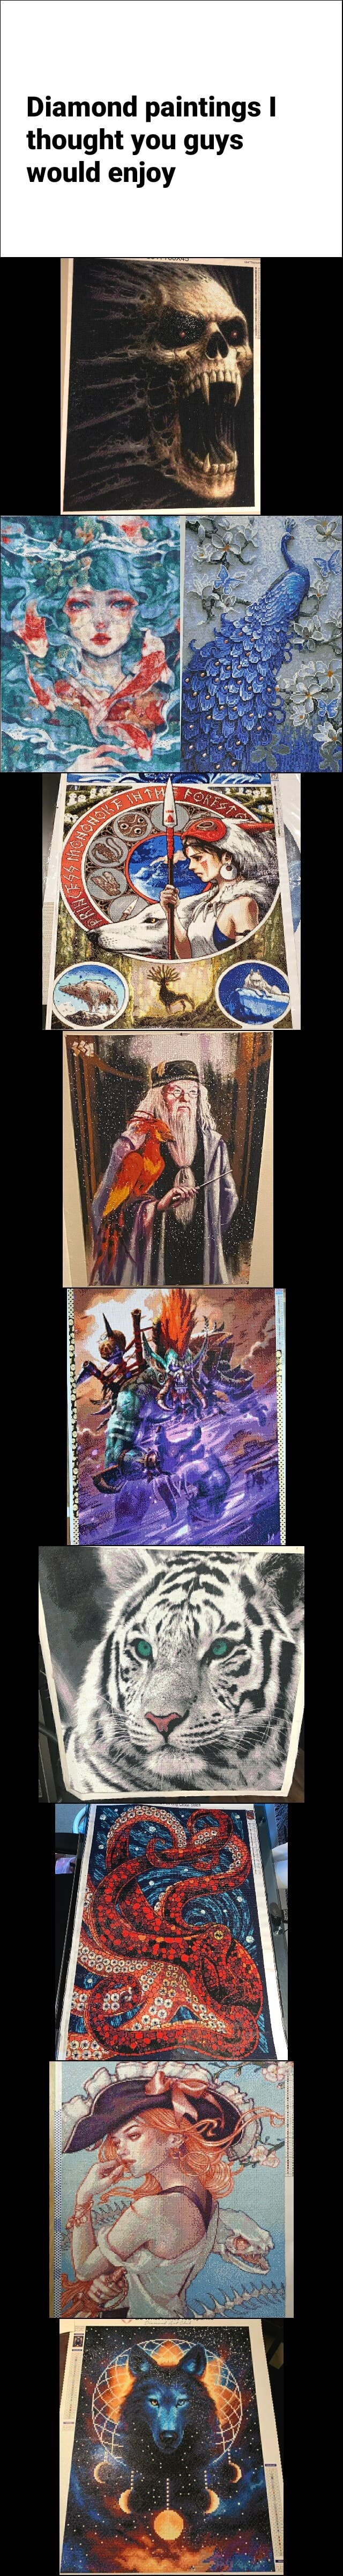 Diamond paintings I thought you guys would enjoy memes